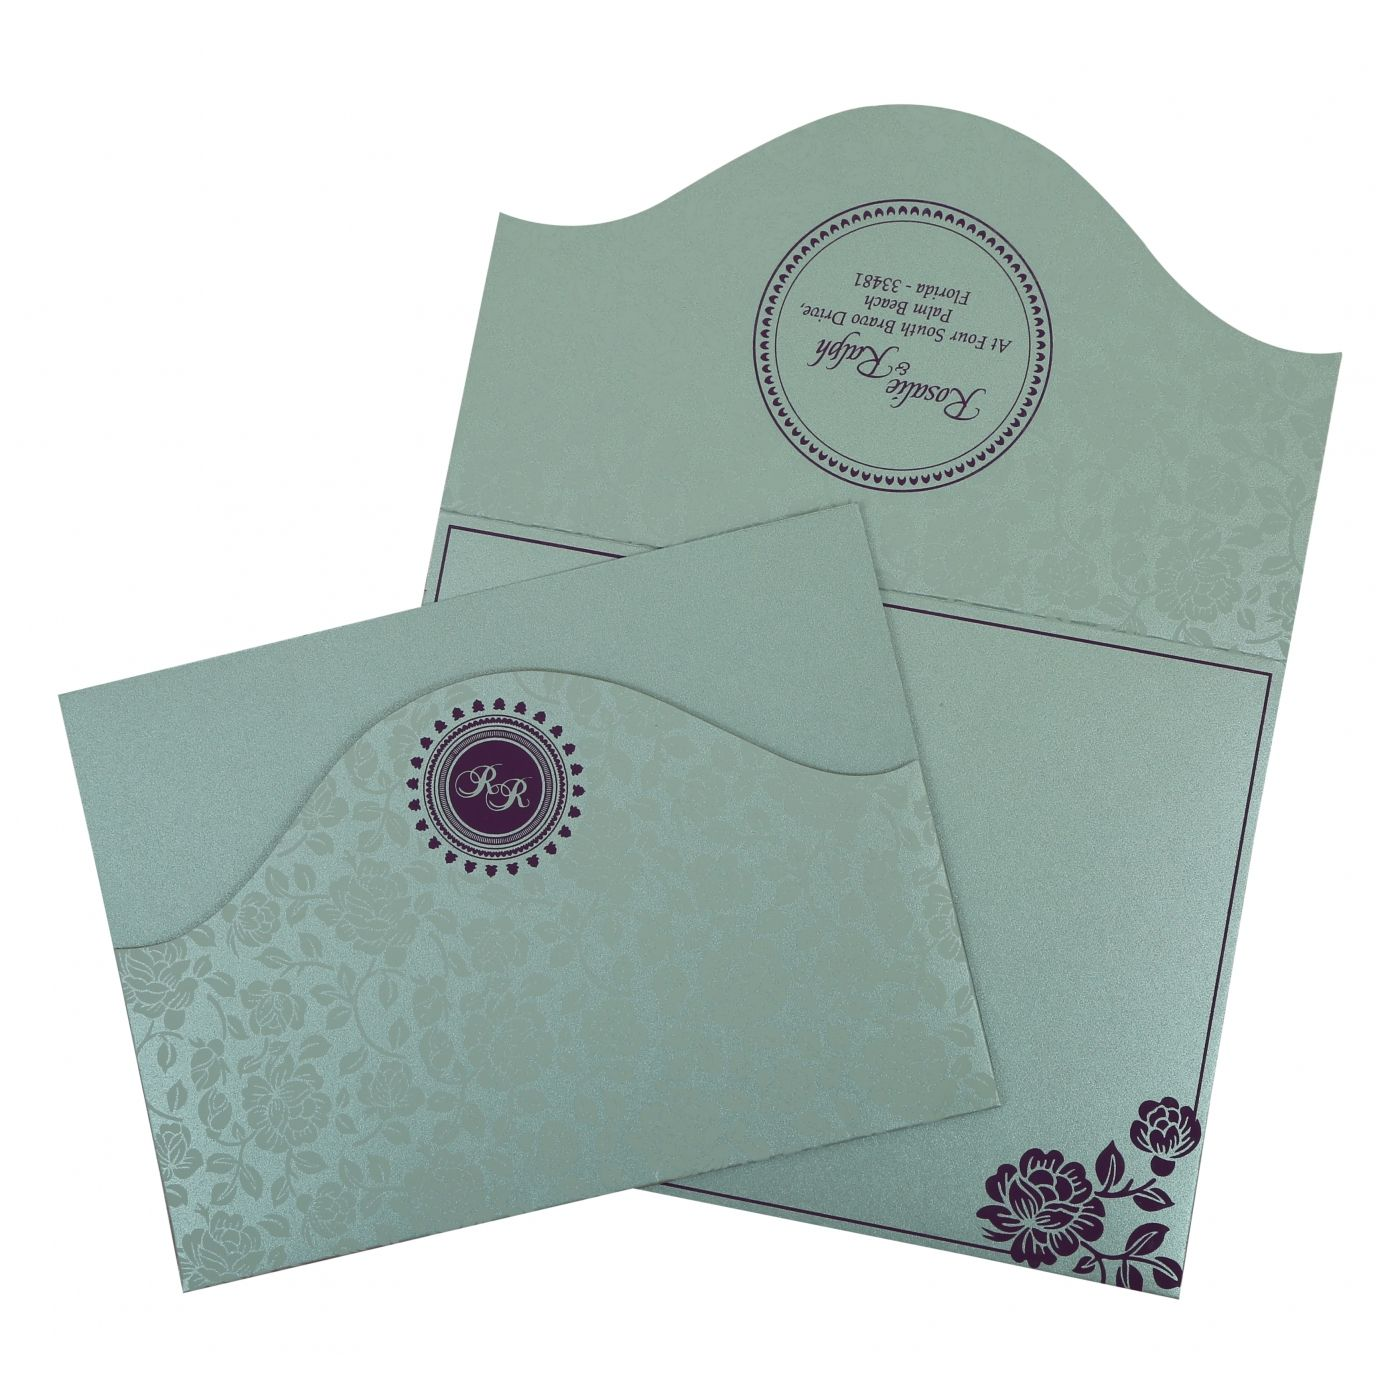 SILVER SHIMMERY FLORAL THEMED - SCREEN PRINTED WEDDING INVITATION : CSO-802A - IndianWeddingCards